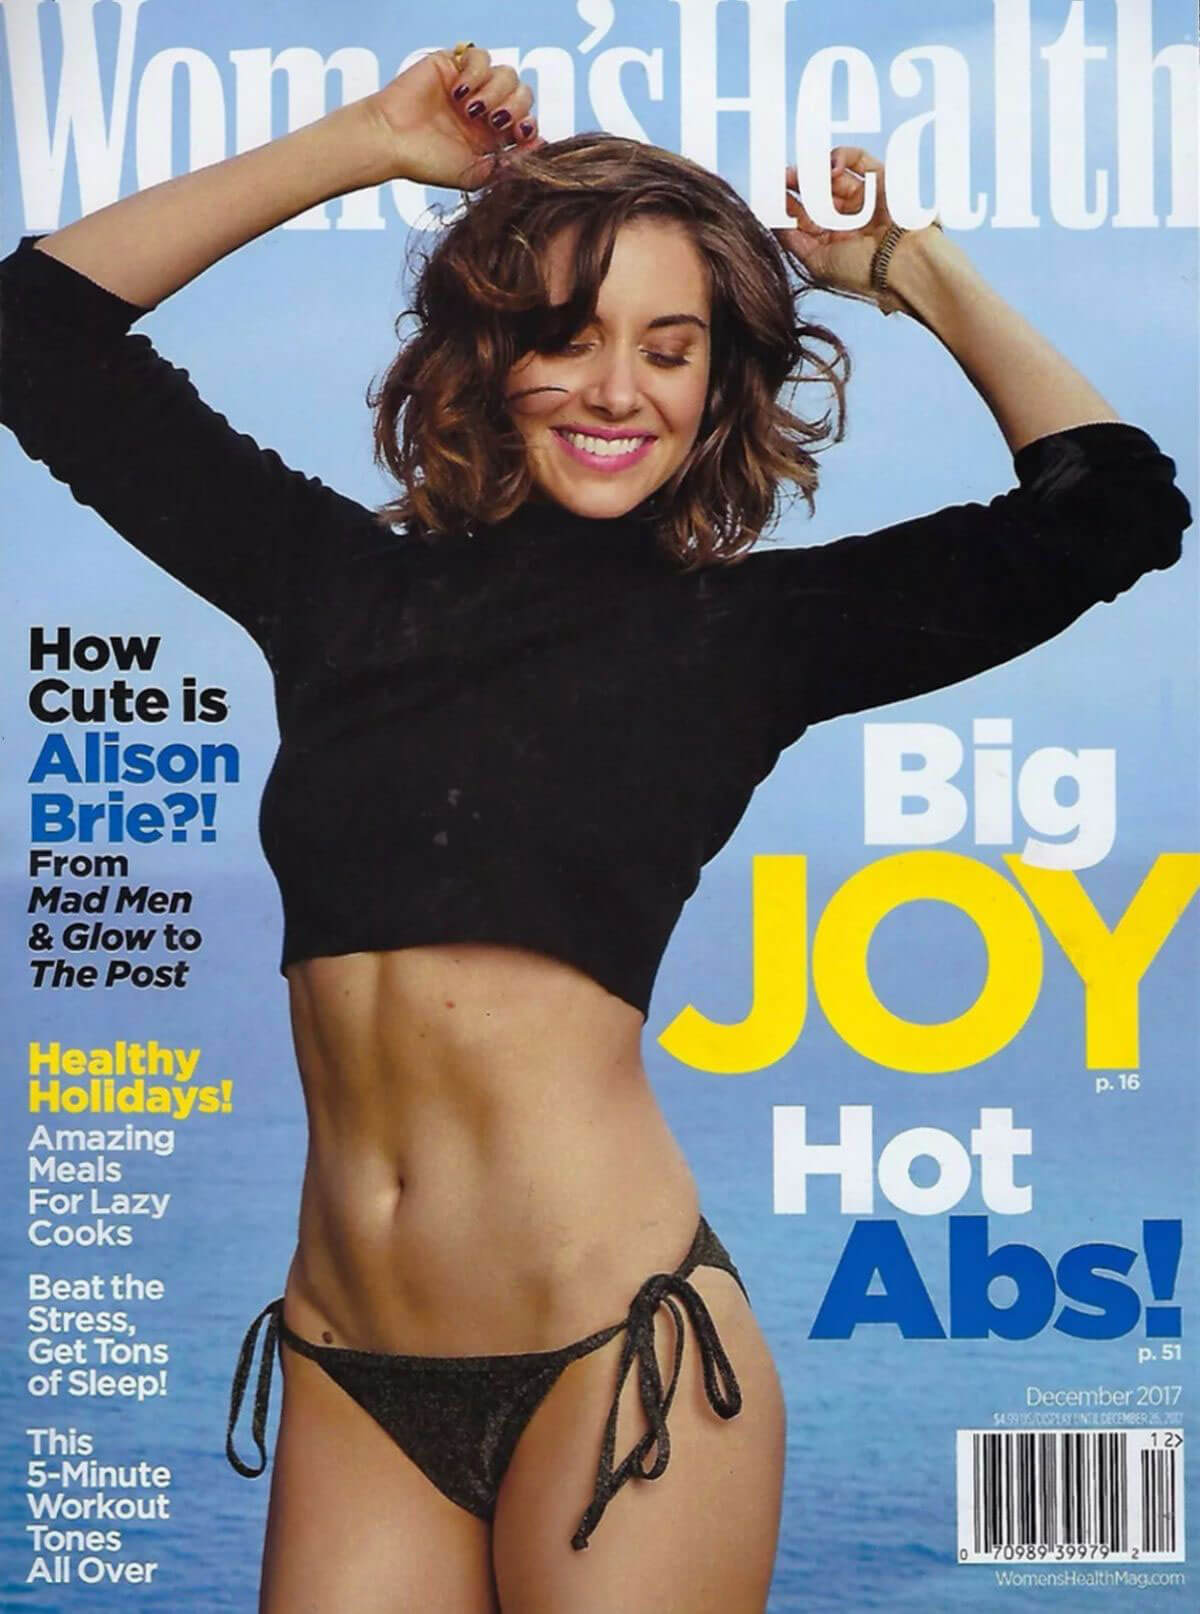 Alison Brie Stills on the Cover of Women's Health Magazine, December 2017